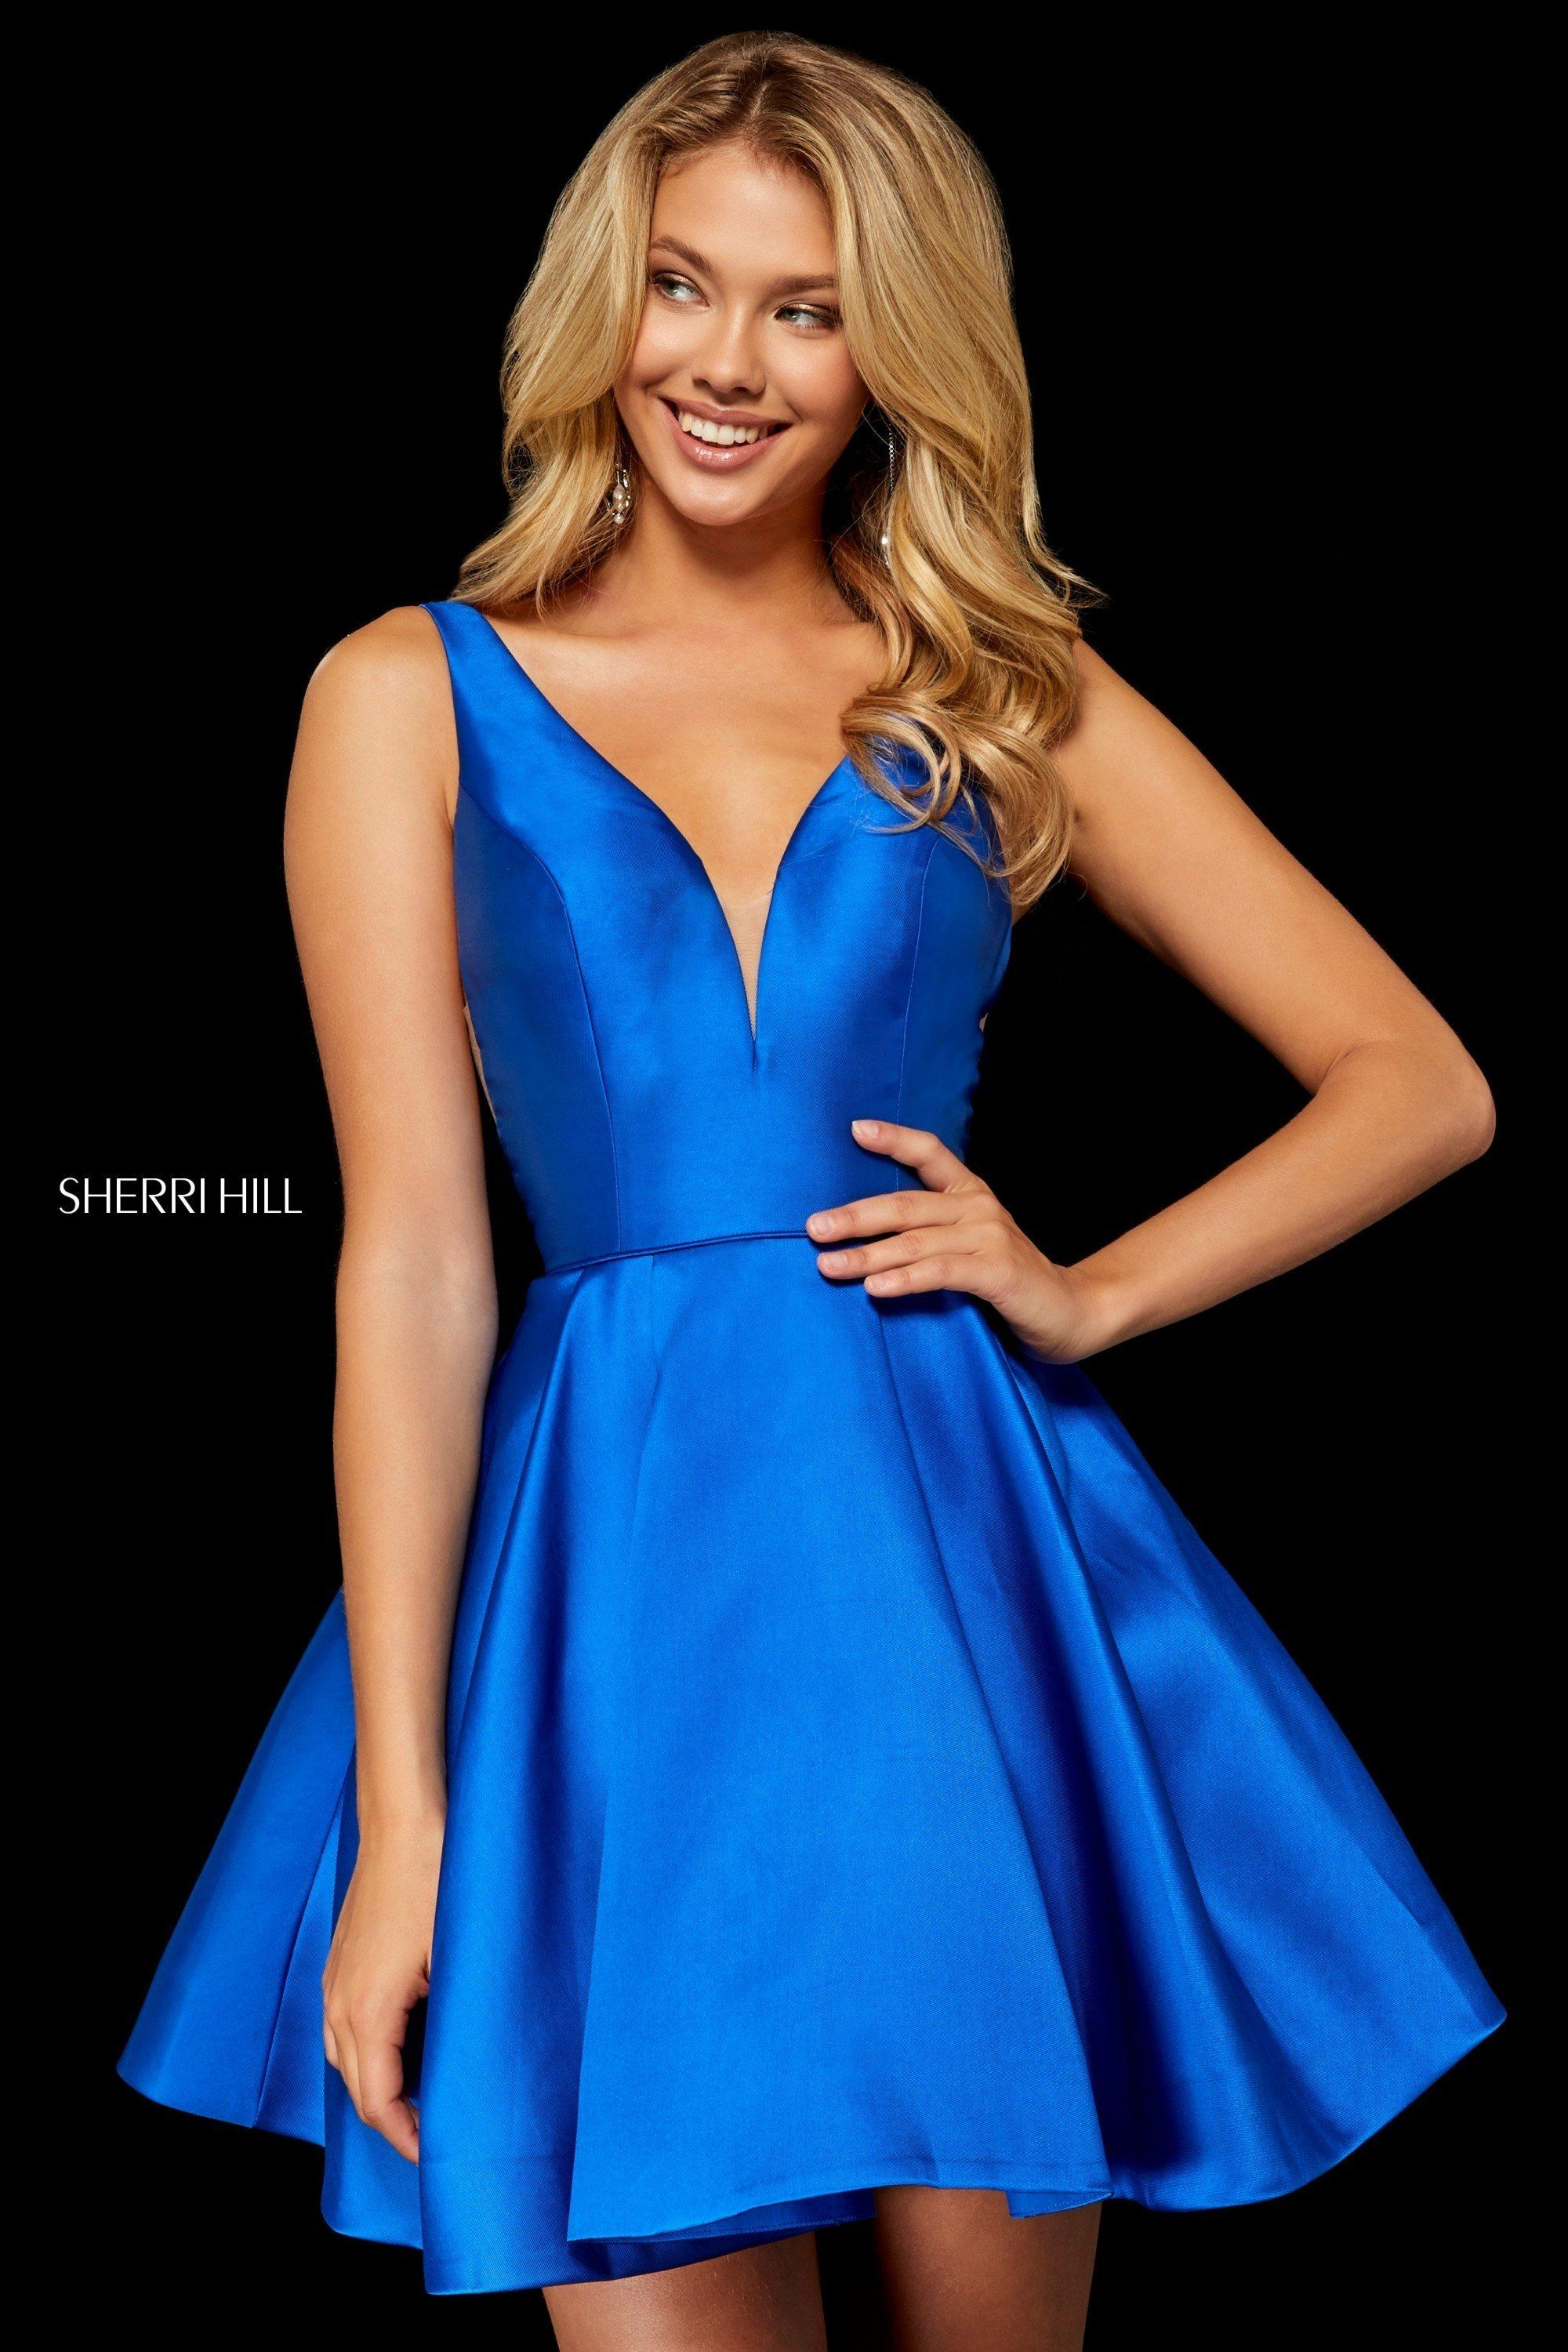 f61cb3e4166 Dance with your friends in Sherri Hill 52179. This darling satin party dress  has a plunge illusion